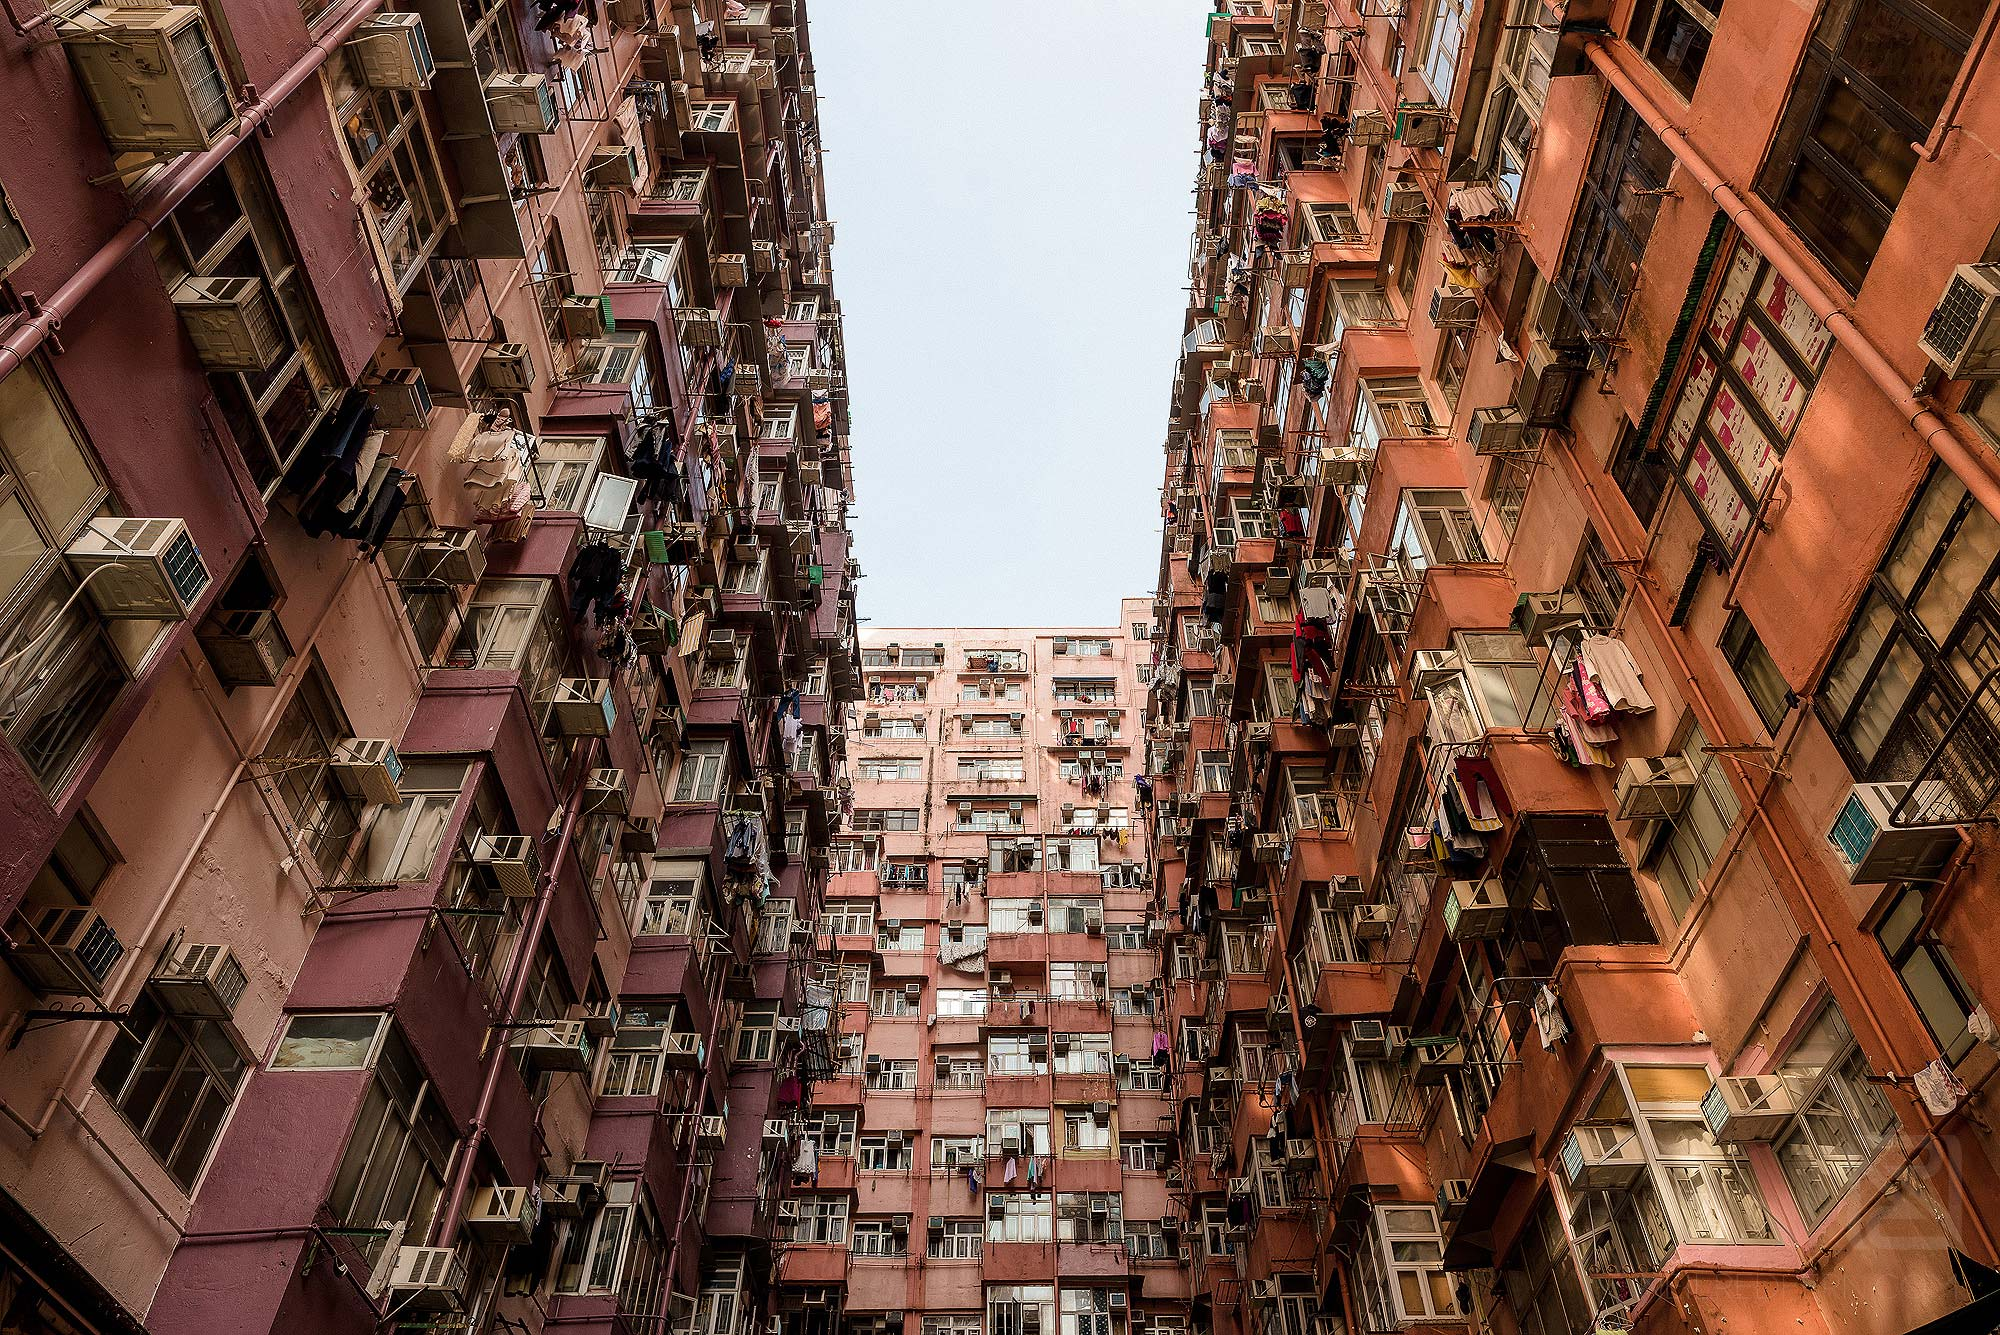 Quarry Bay monster building from Transformers